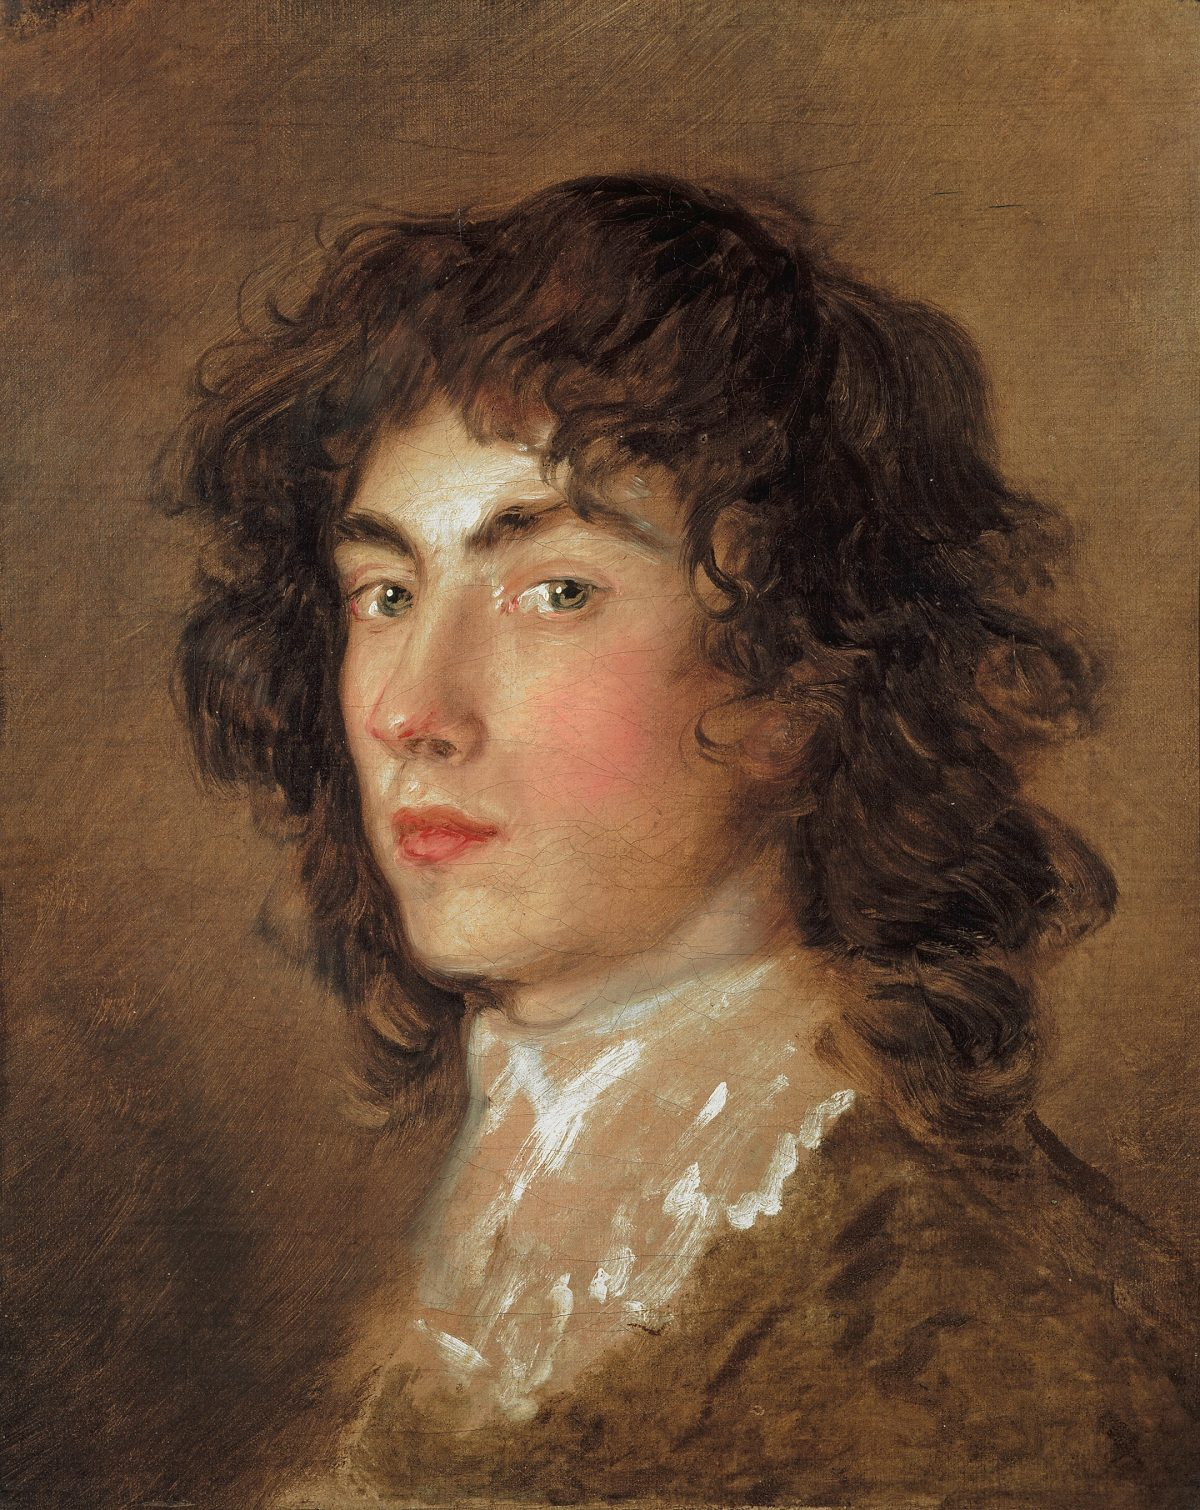 Young man 18th century